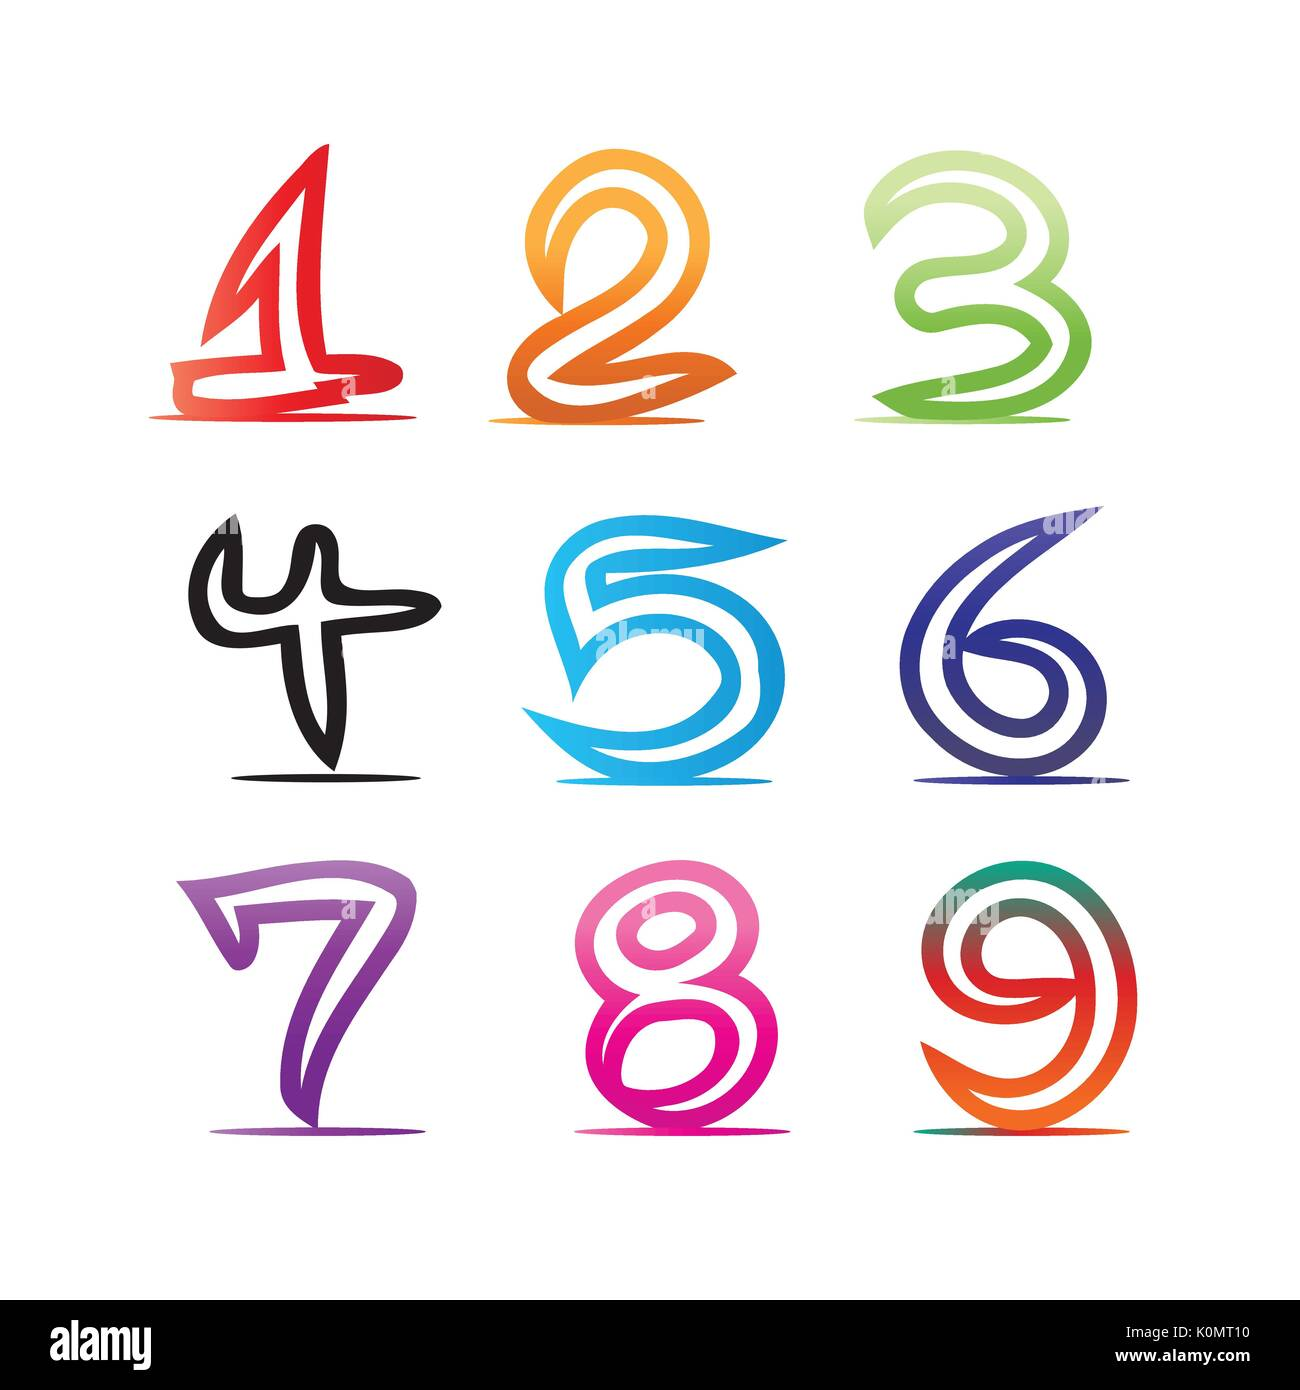 colorful numbers illustration, one, two, three, four, five ...